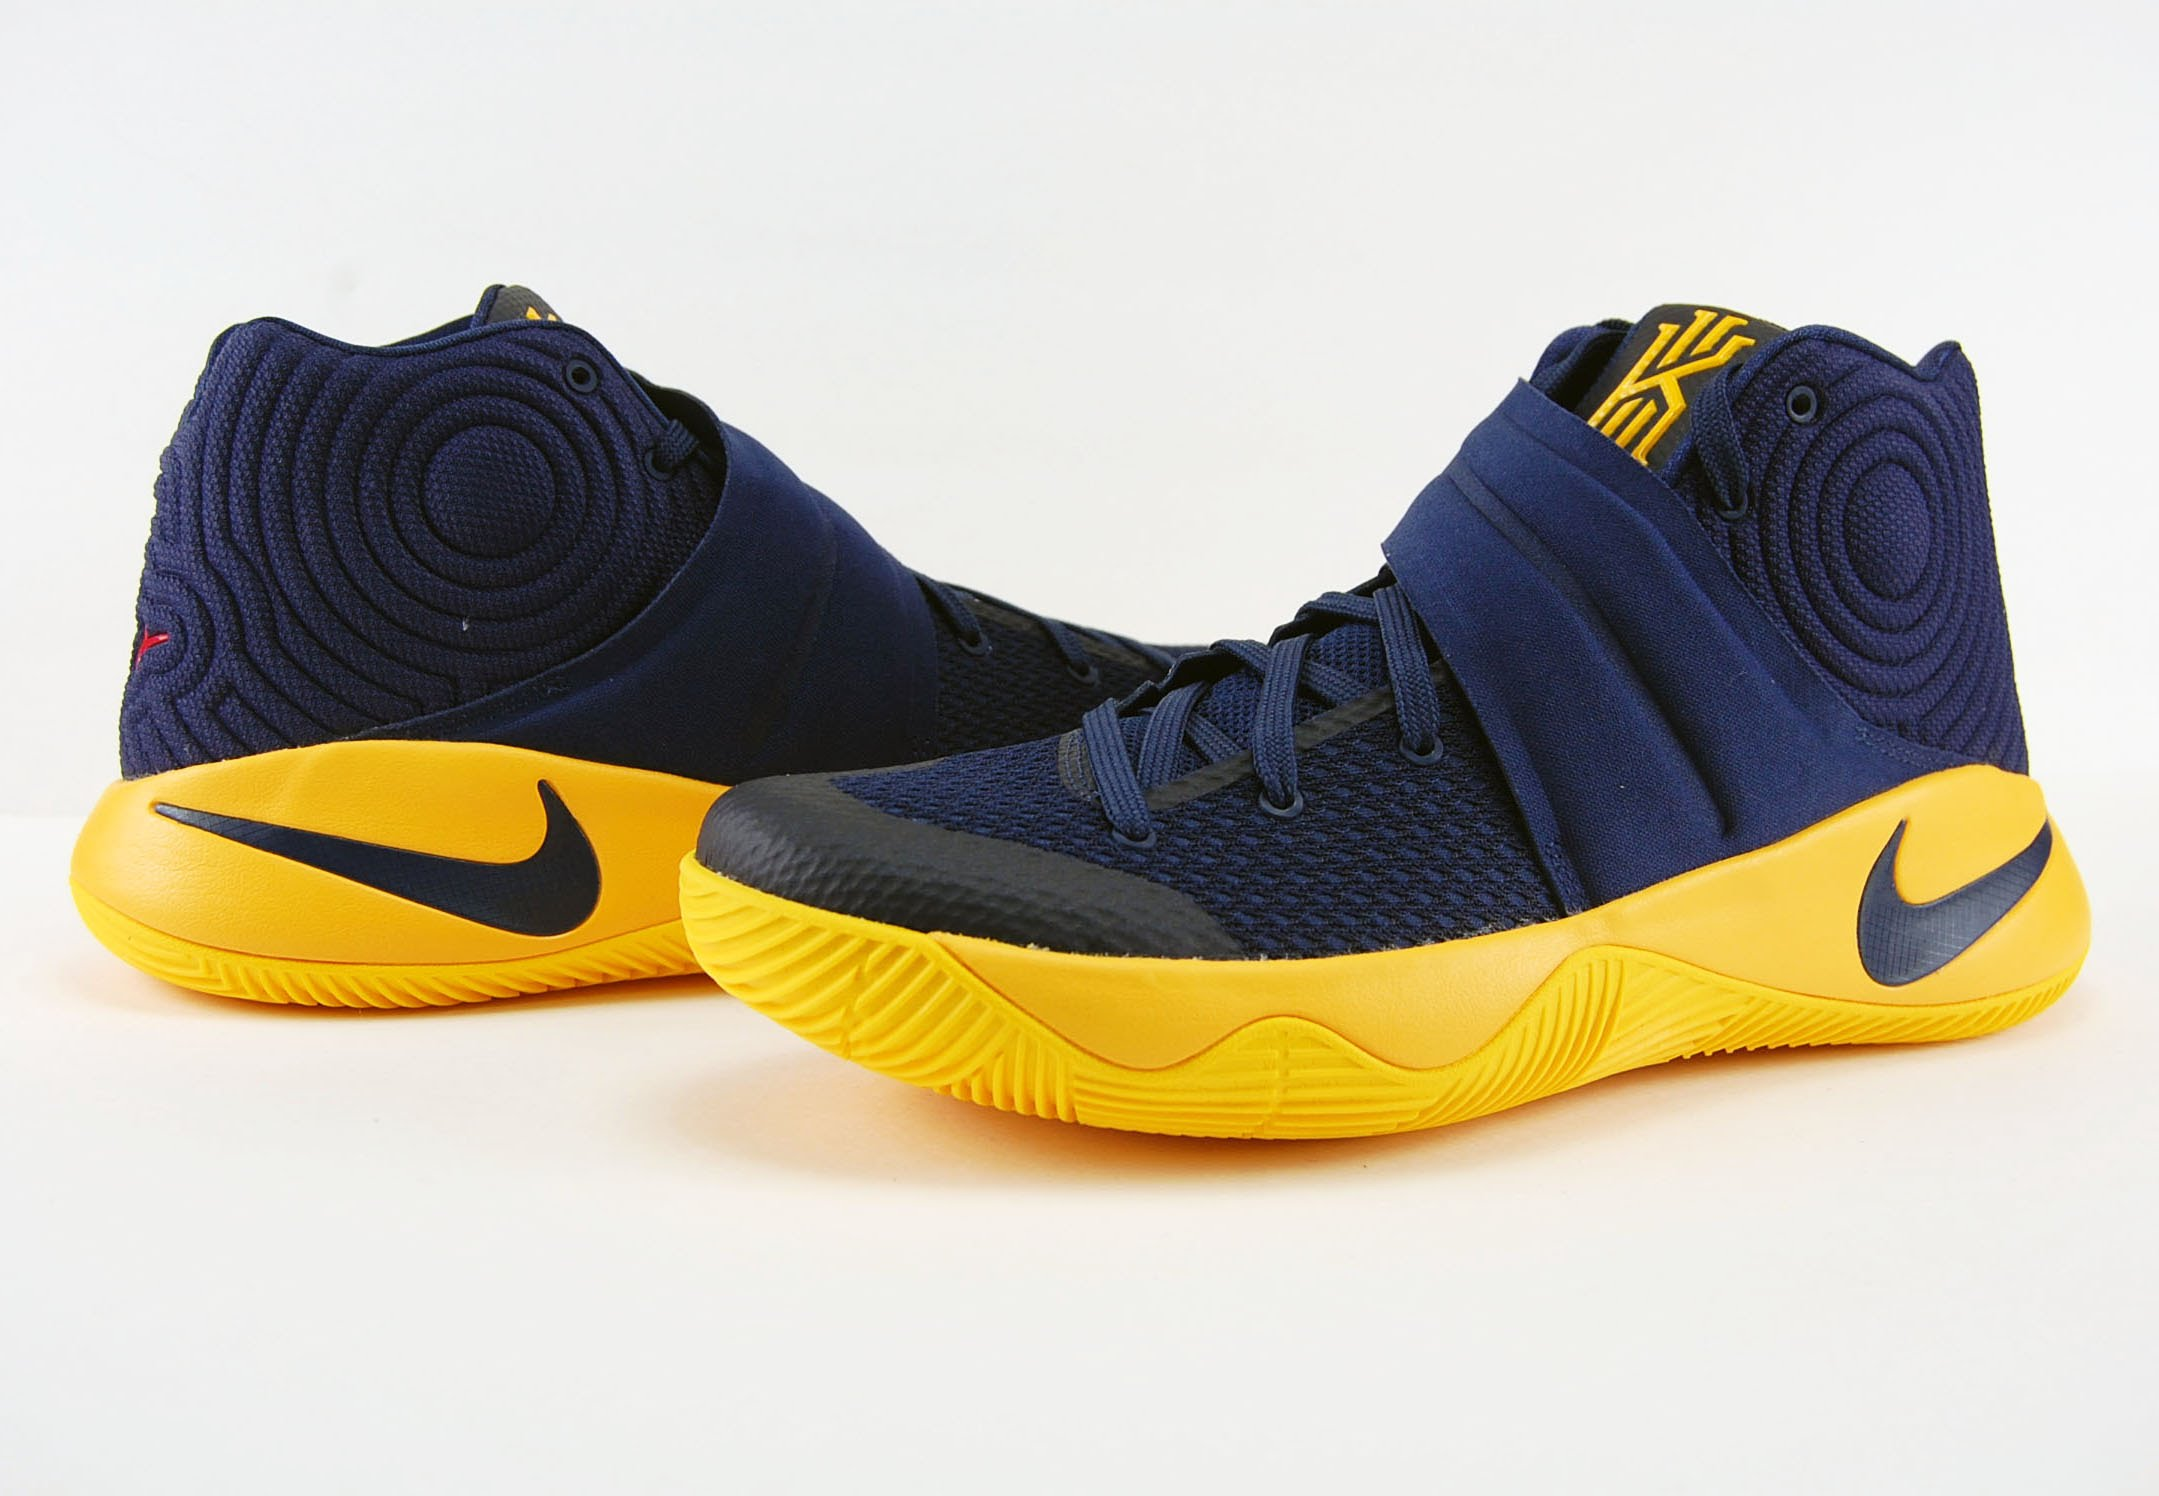 new york eb754 40487 buy nike kyrie 2 rosa gul e6025 02b27